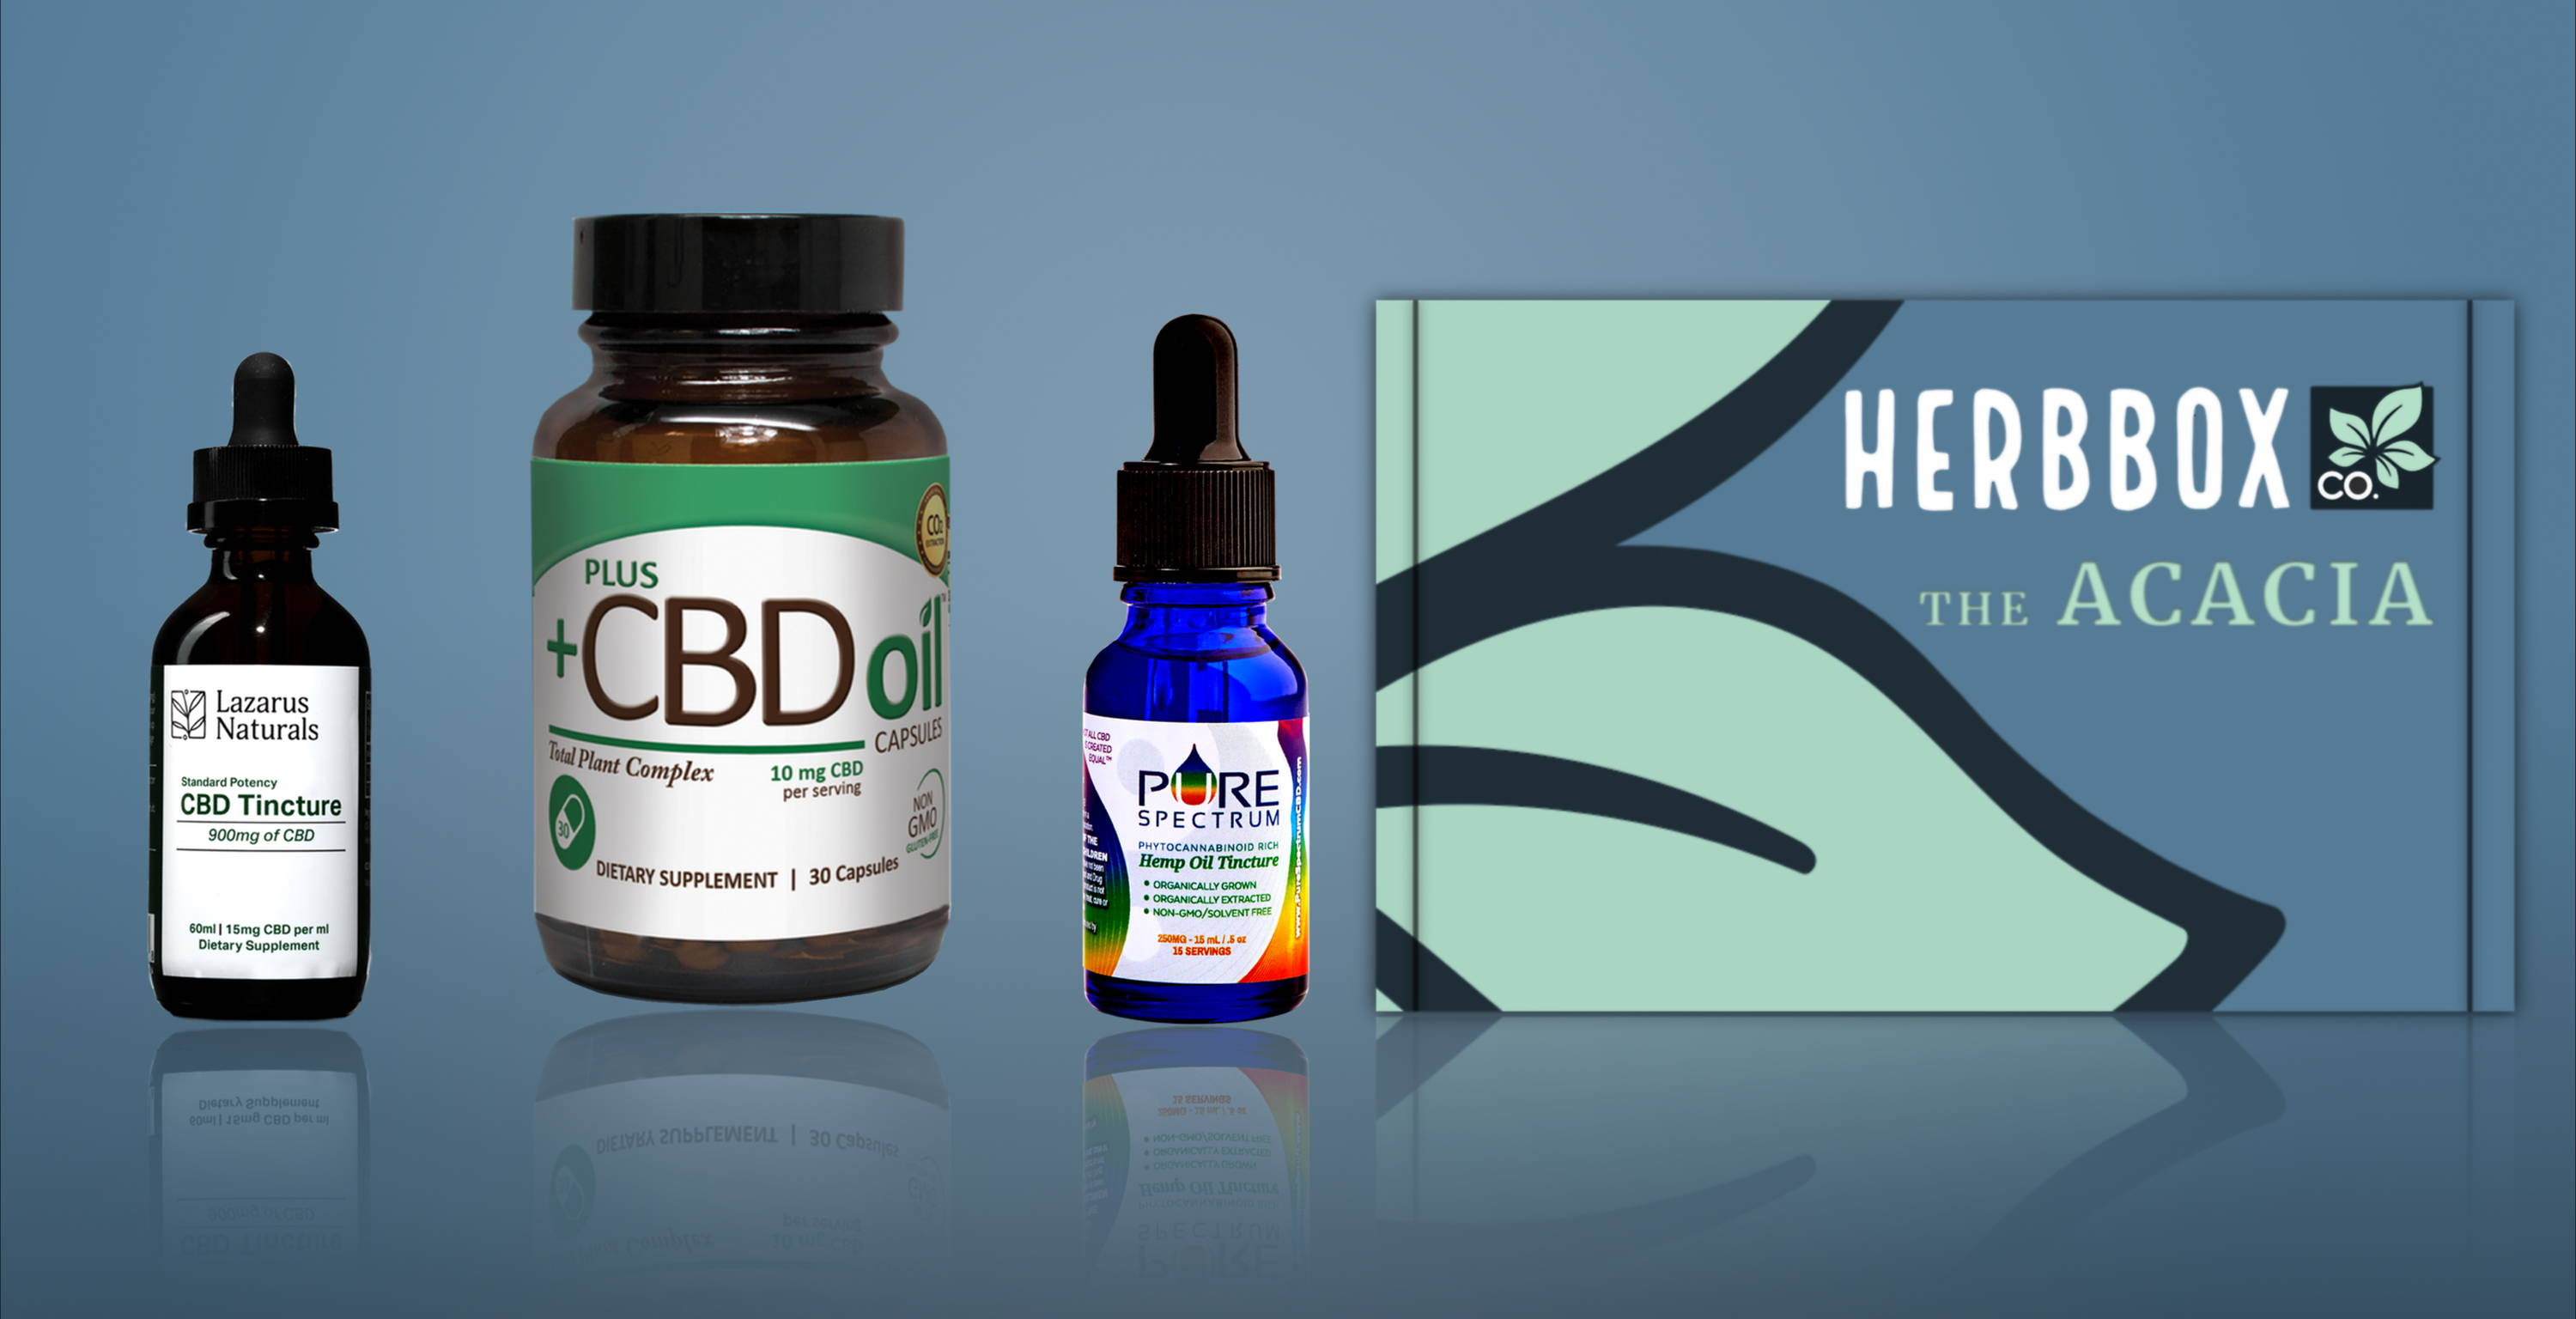 The Acacia - Your Monthly Supply of CBD Oil